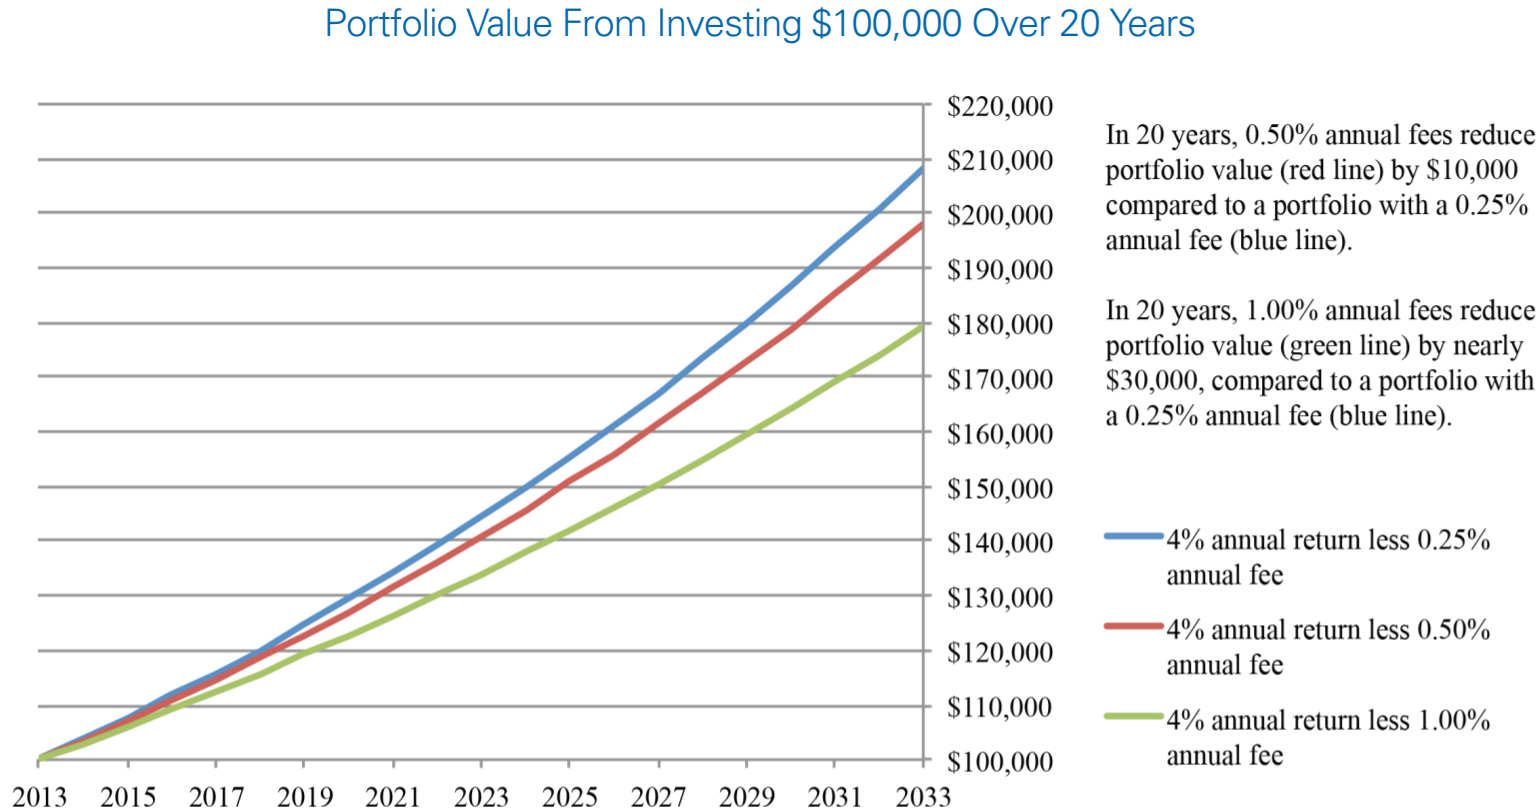 Portfolio Value From Investing $100,000 Over 20 Years